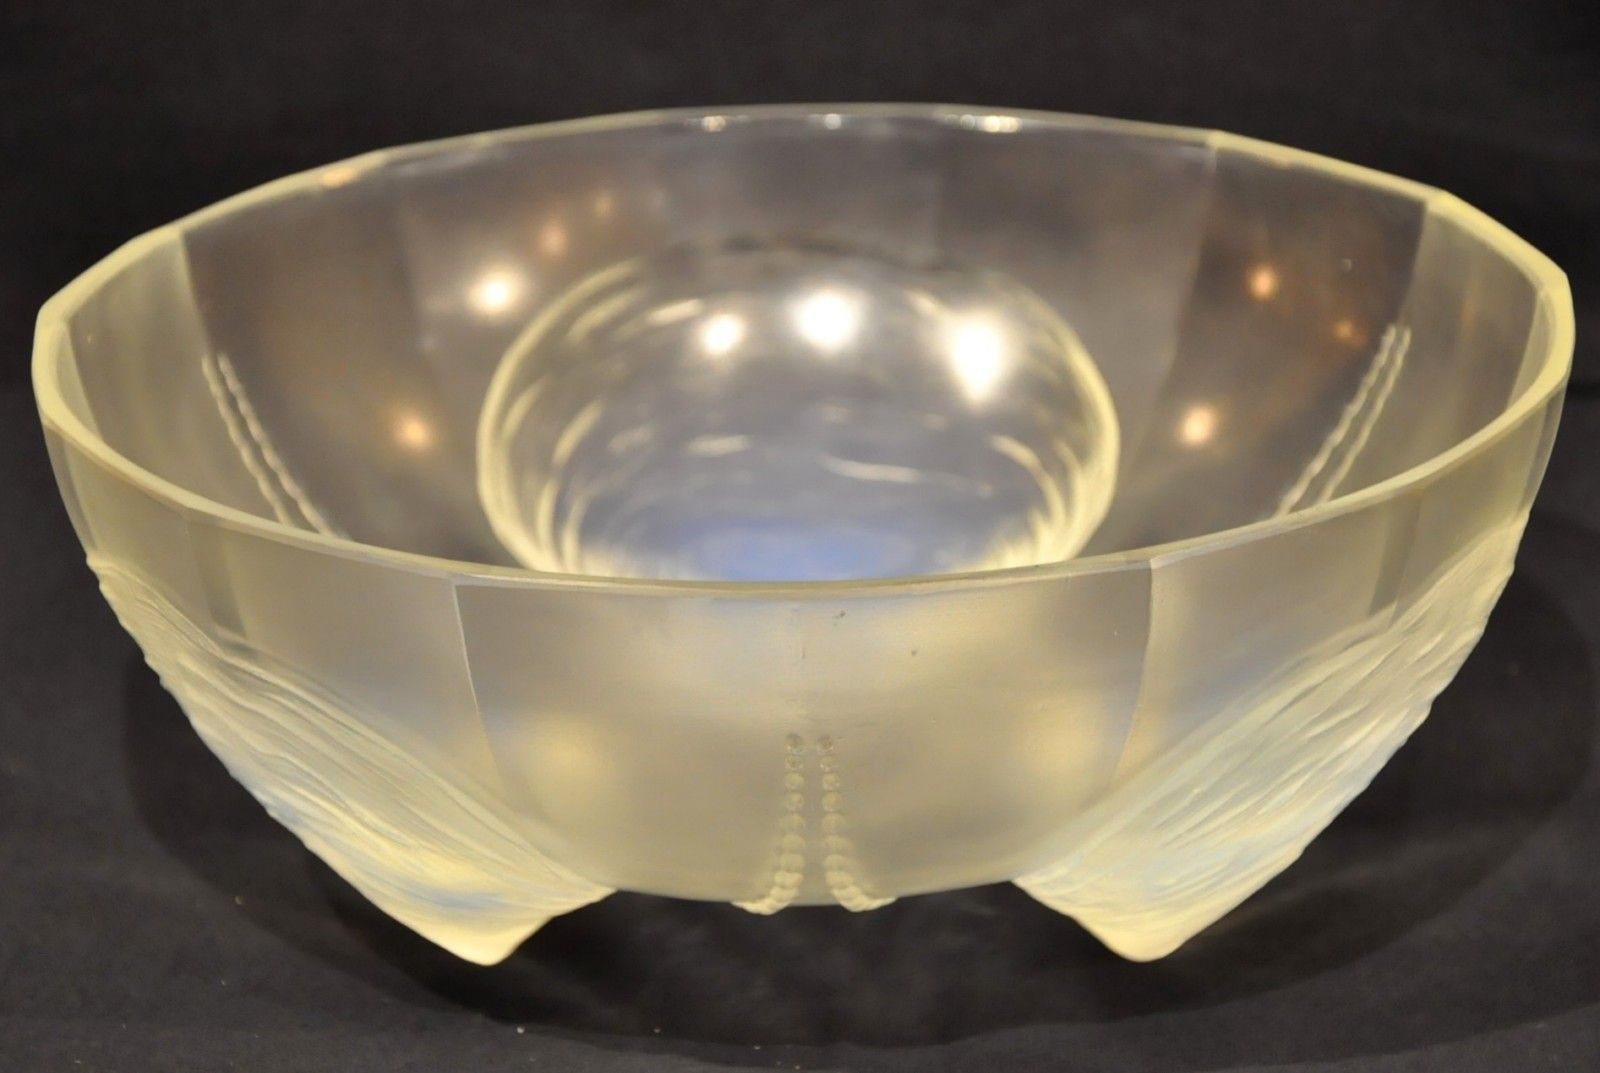 art deco coquilles et perles bowl in opal glass 1930s for sale at pamono. Black Bedroom Furniture Sets. Home Design Ideas